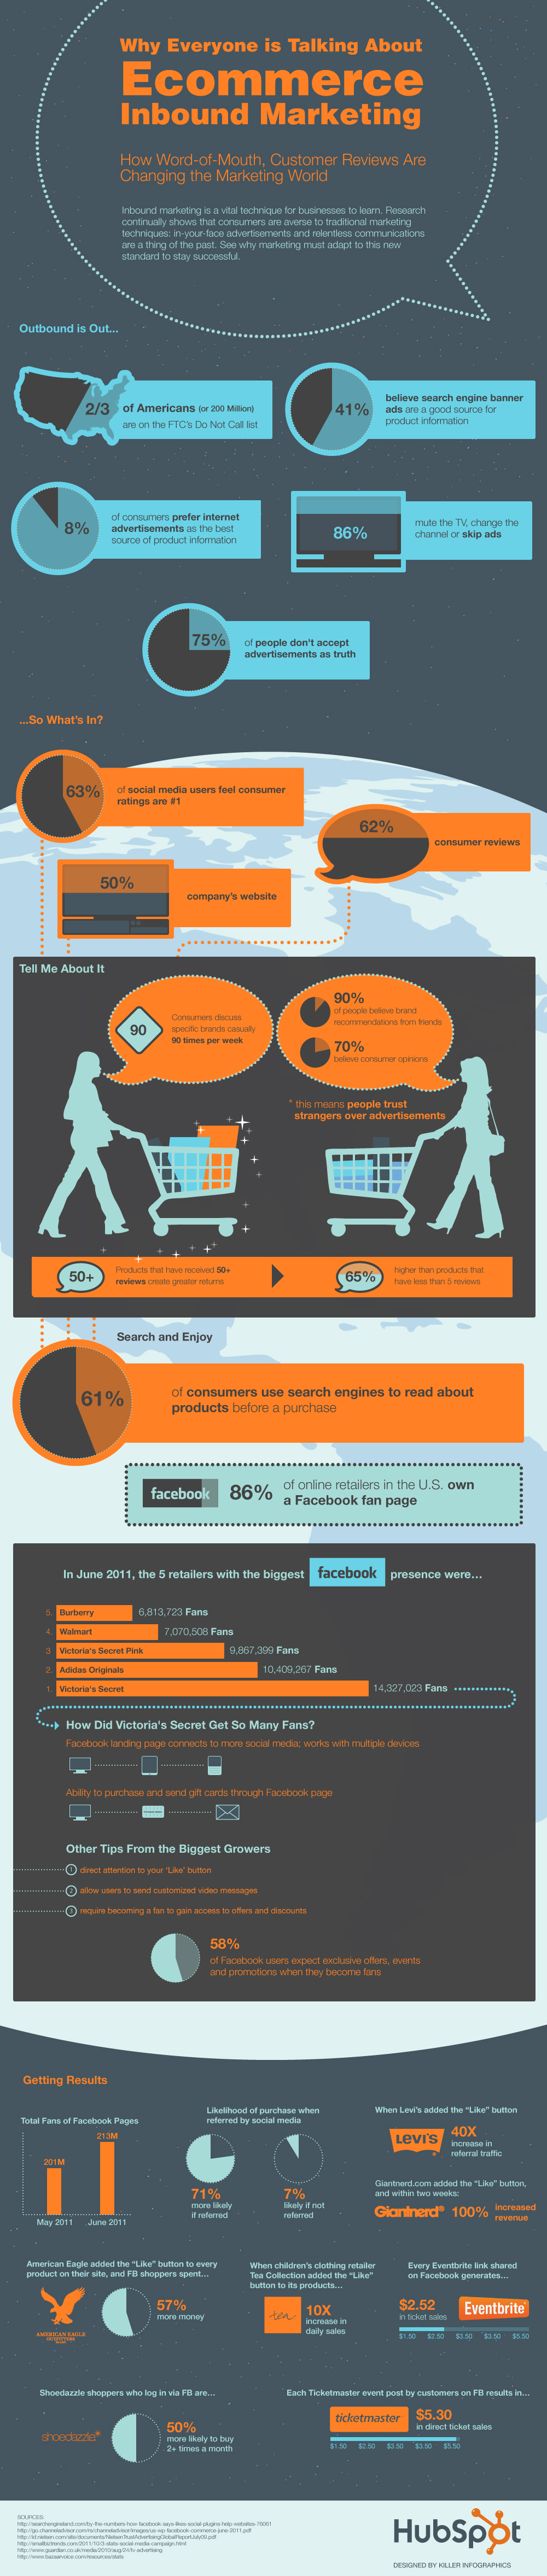 Ecommerce Inbound Marketing vs Outbound Marketing - Infographic